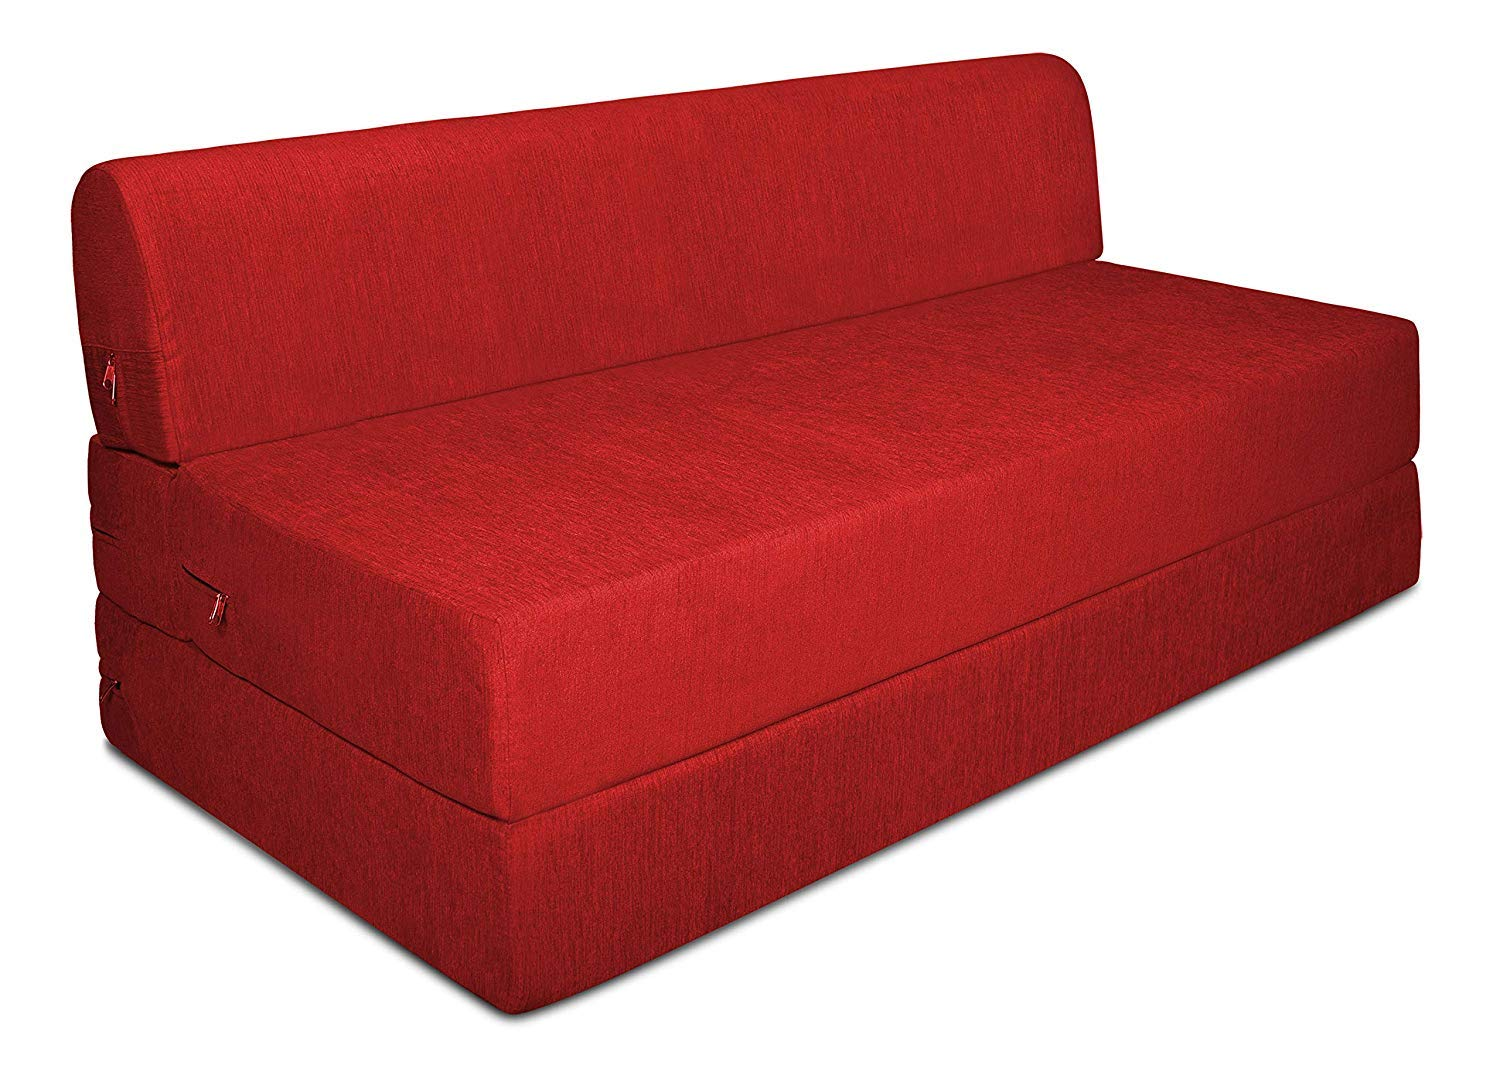 Buy 2 seater sofa in Red colour- Aart store